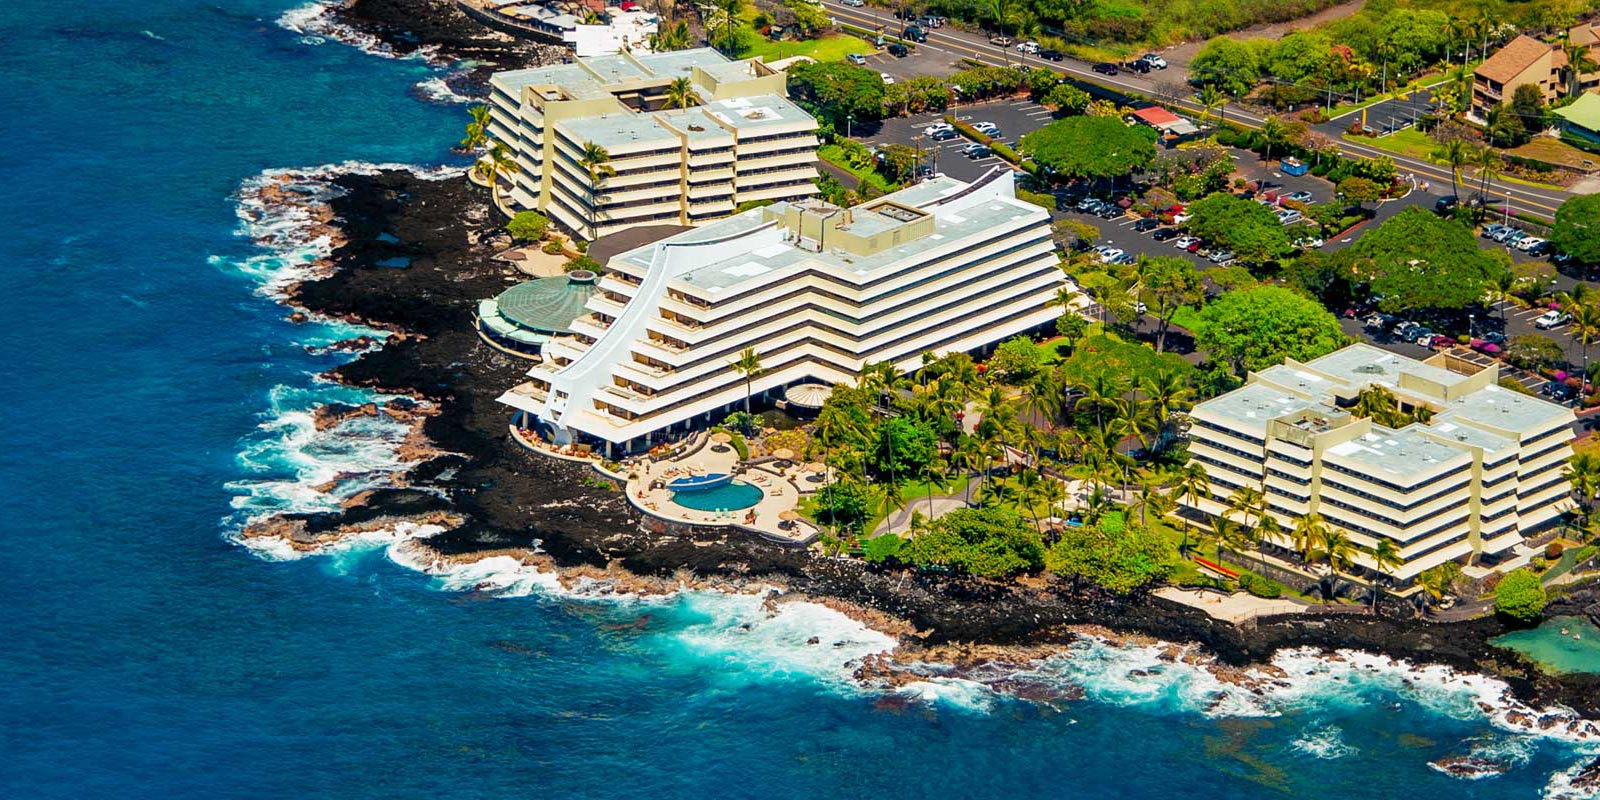 Kona-Tiki-resort-hawaii-mixtourist